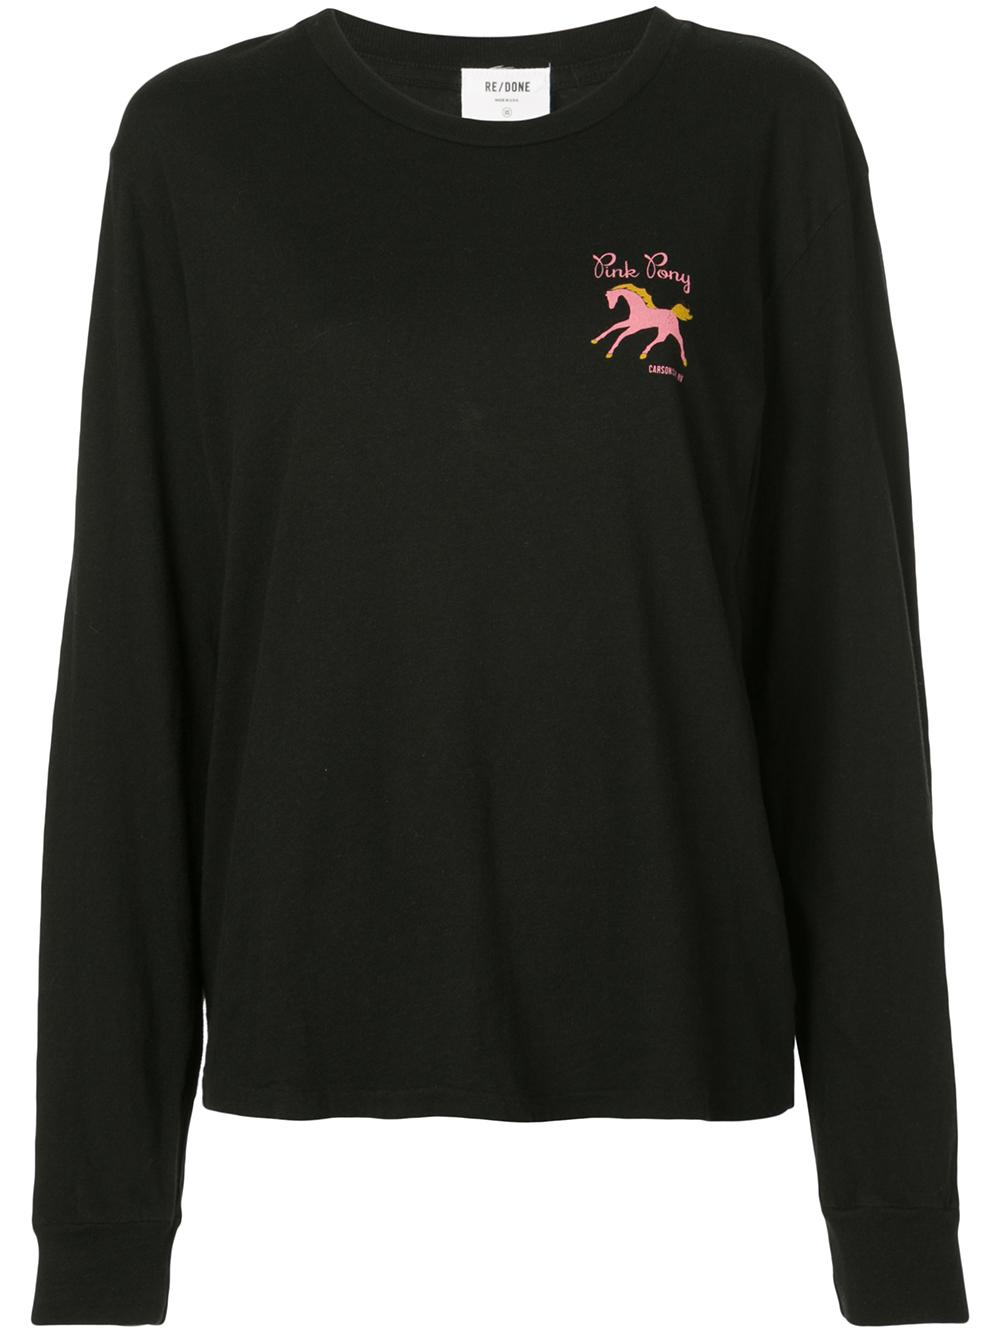 90s Long Sleeve Pink Pony Tee